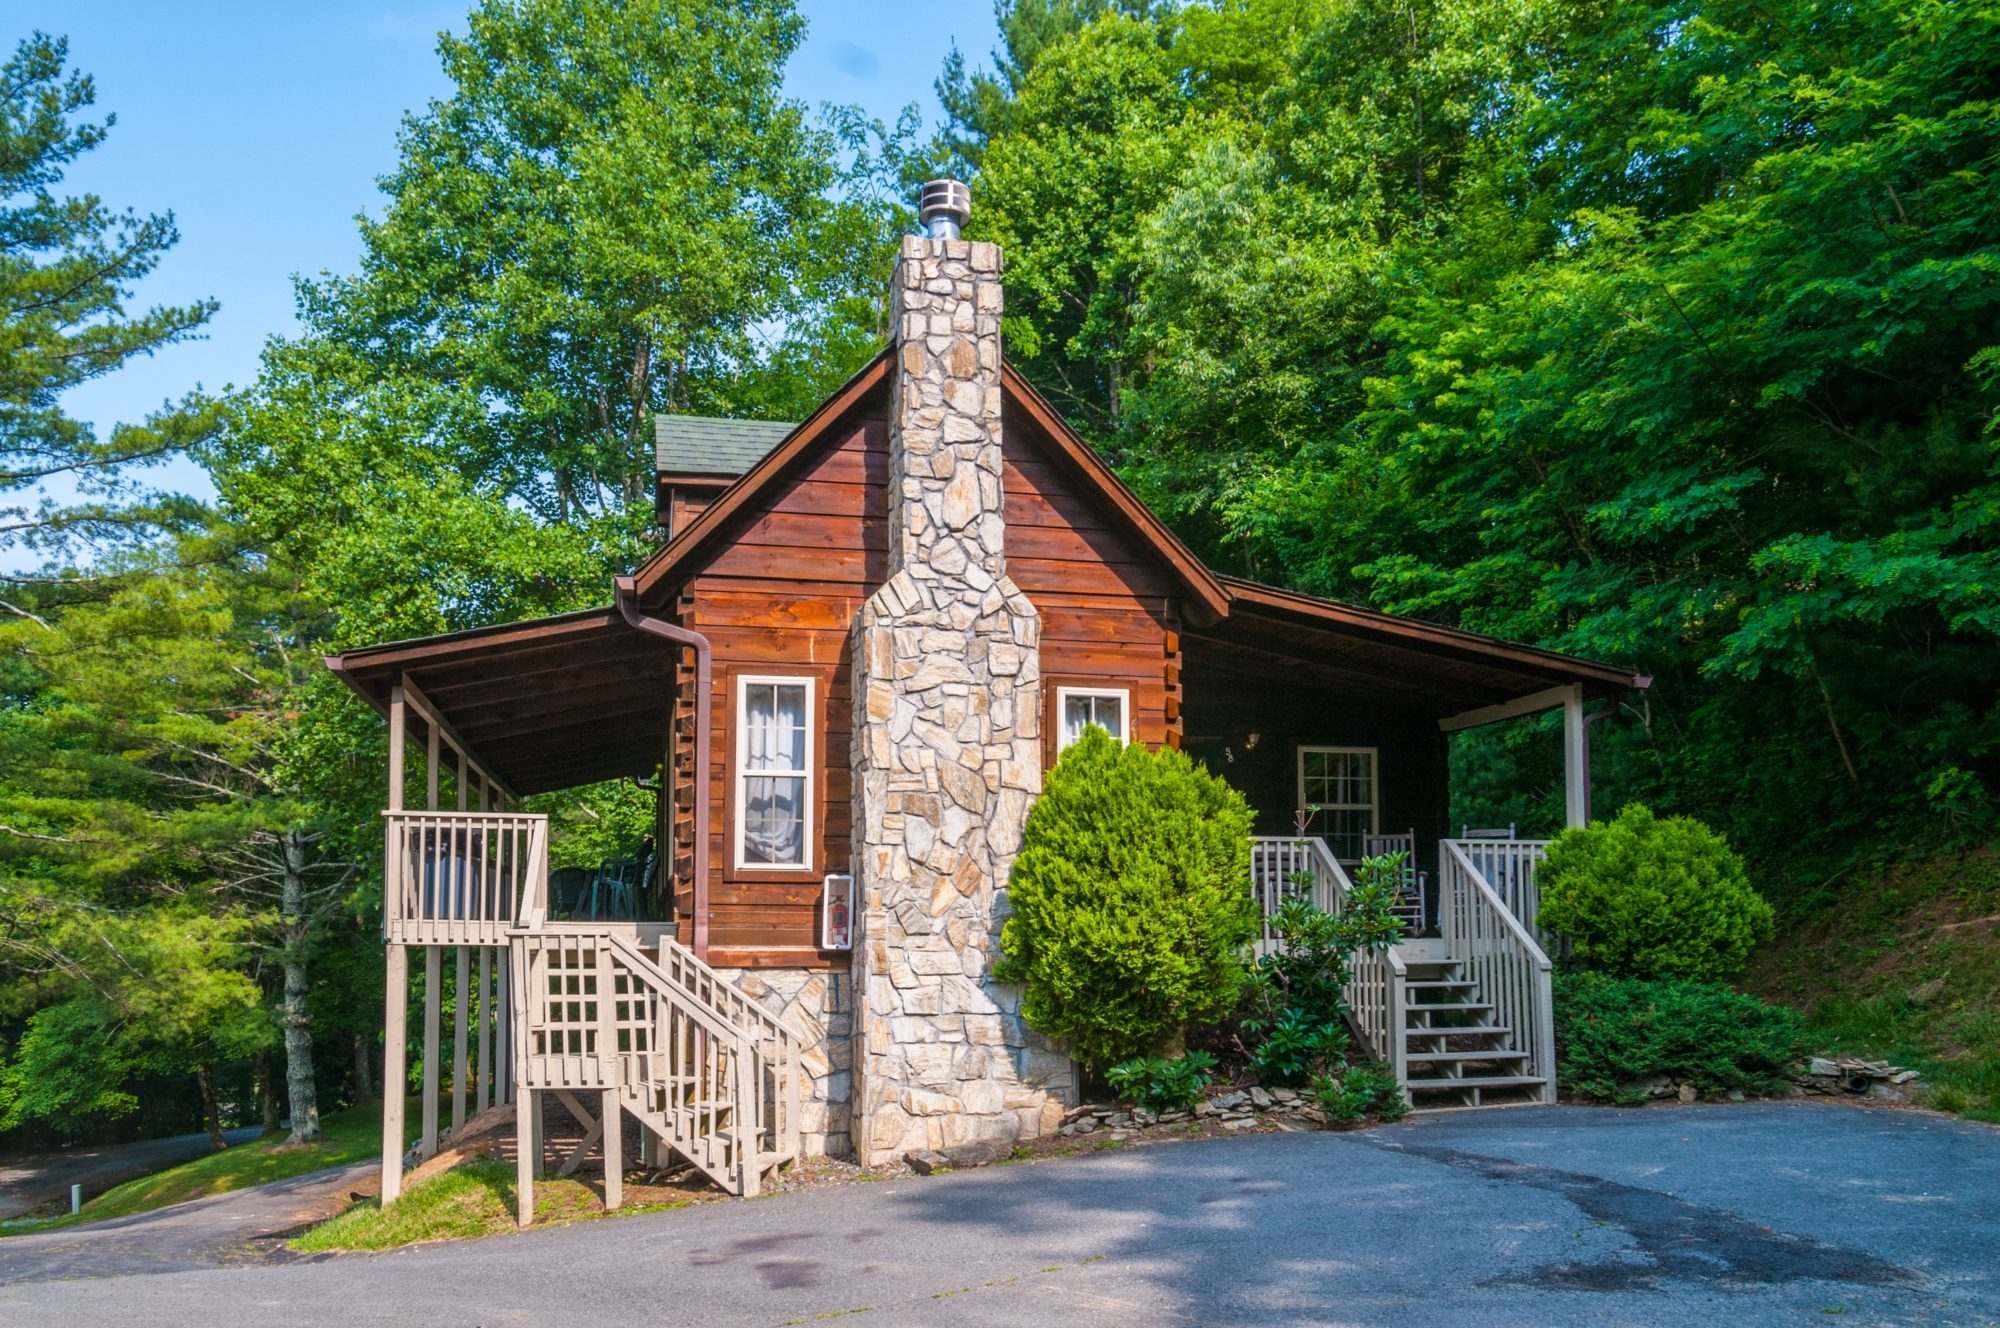 Cabin exterior showing wooden porch with rocking chairs and patio furniture, wooden steps, parking area, trees and landscaping busges